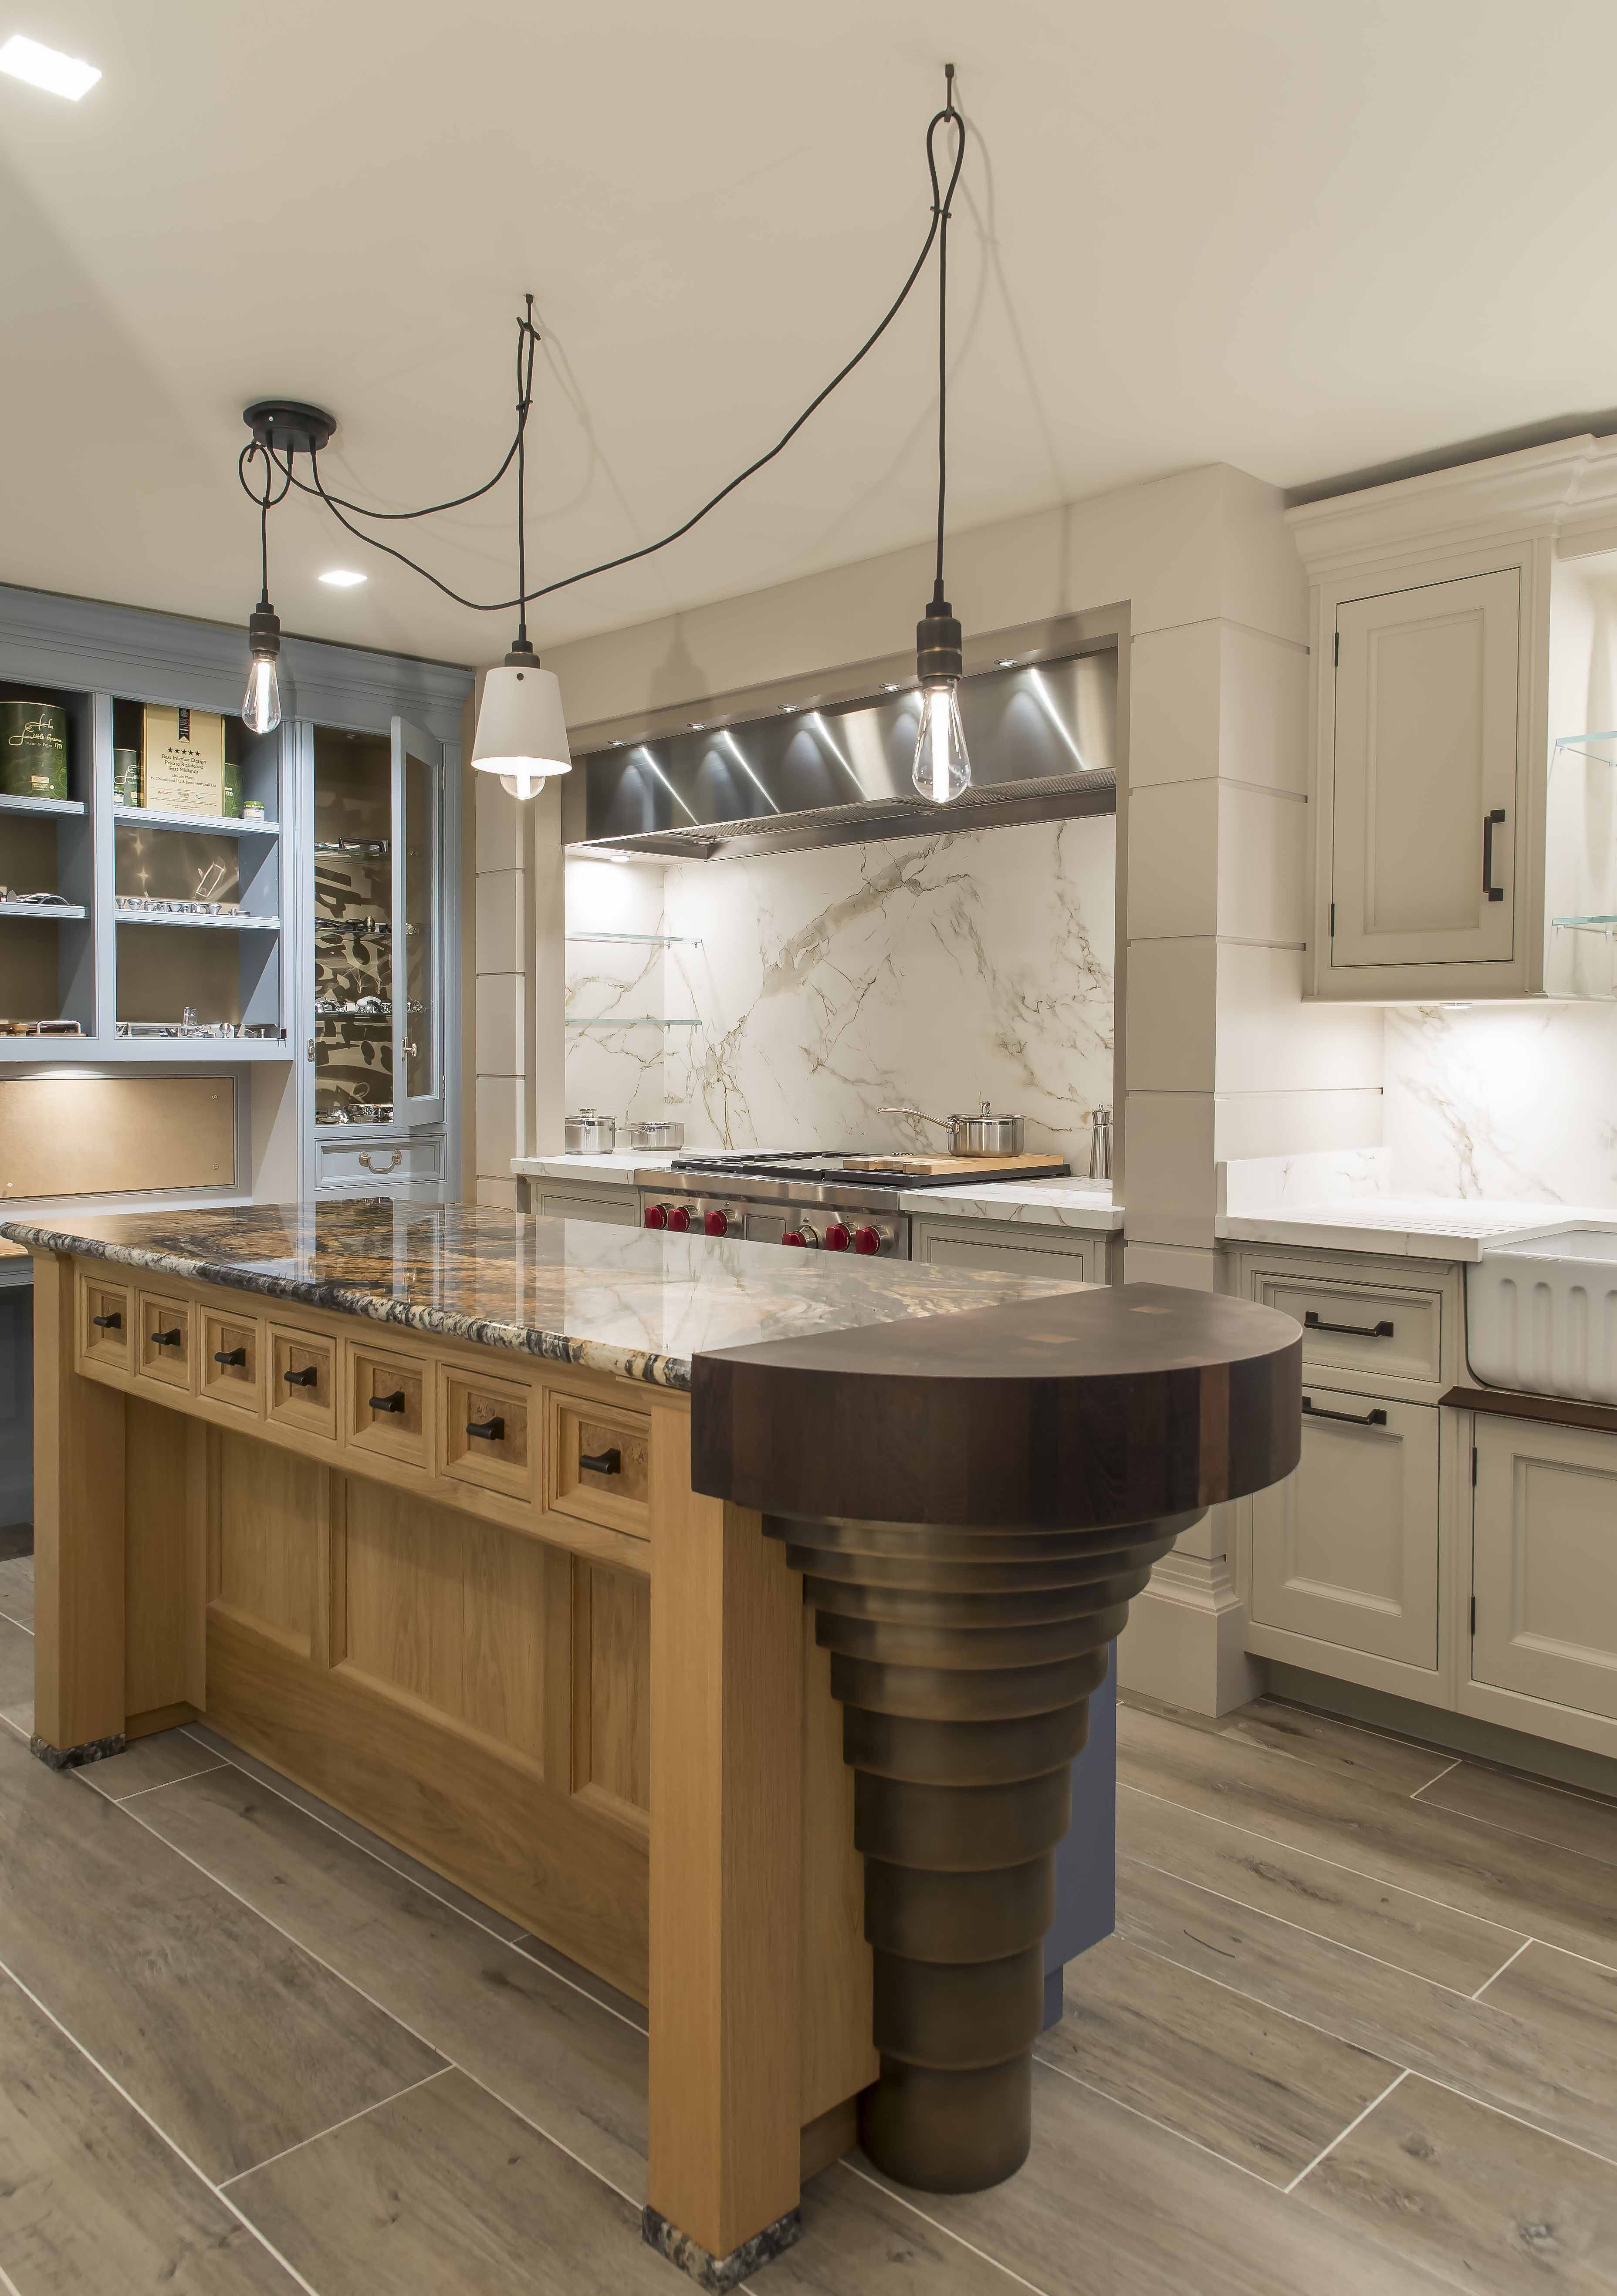 This kitchen is in the chiselwood showrooms and is creating quite a